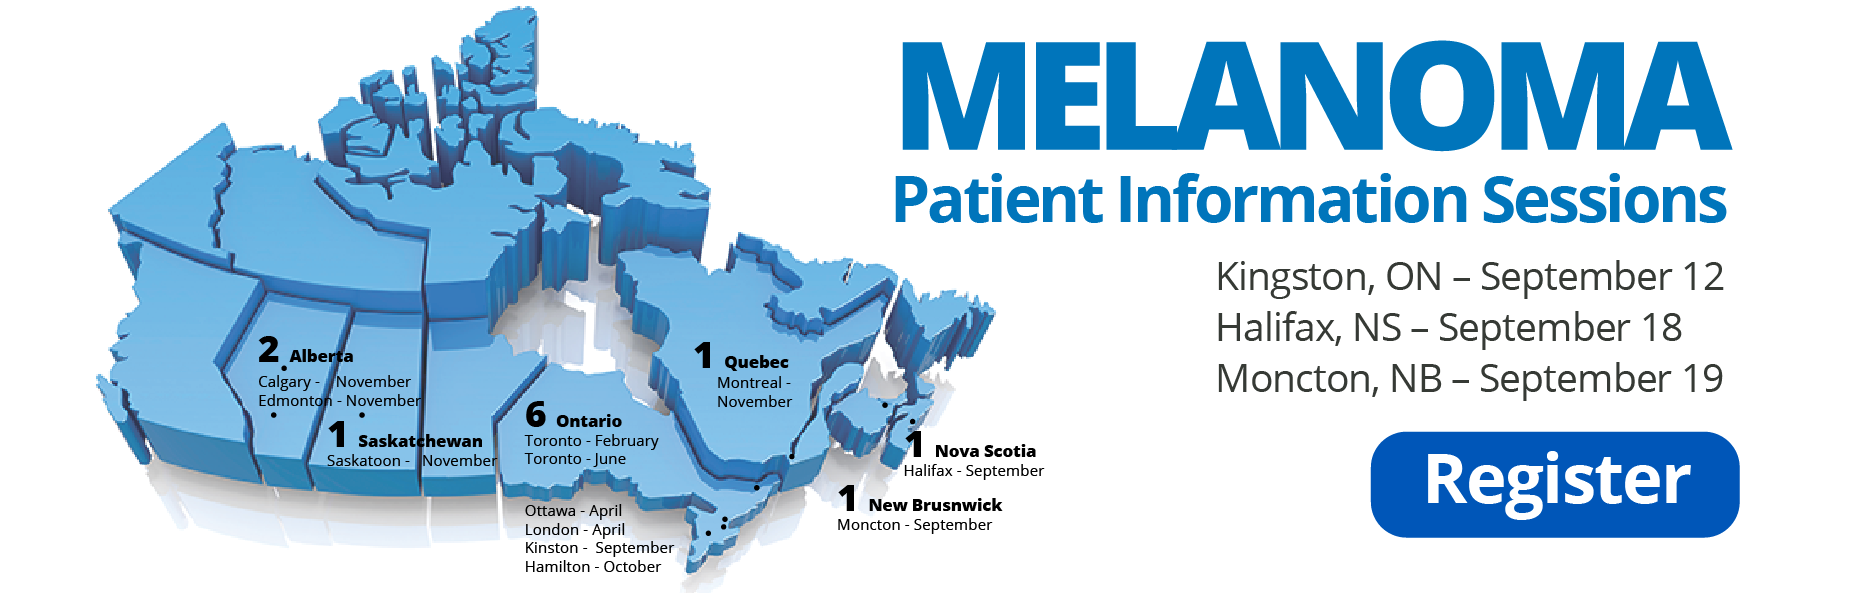 Melanoma Patient Information Sessions Canada